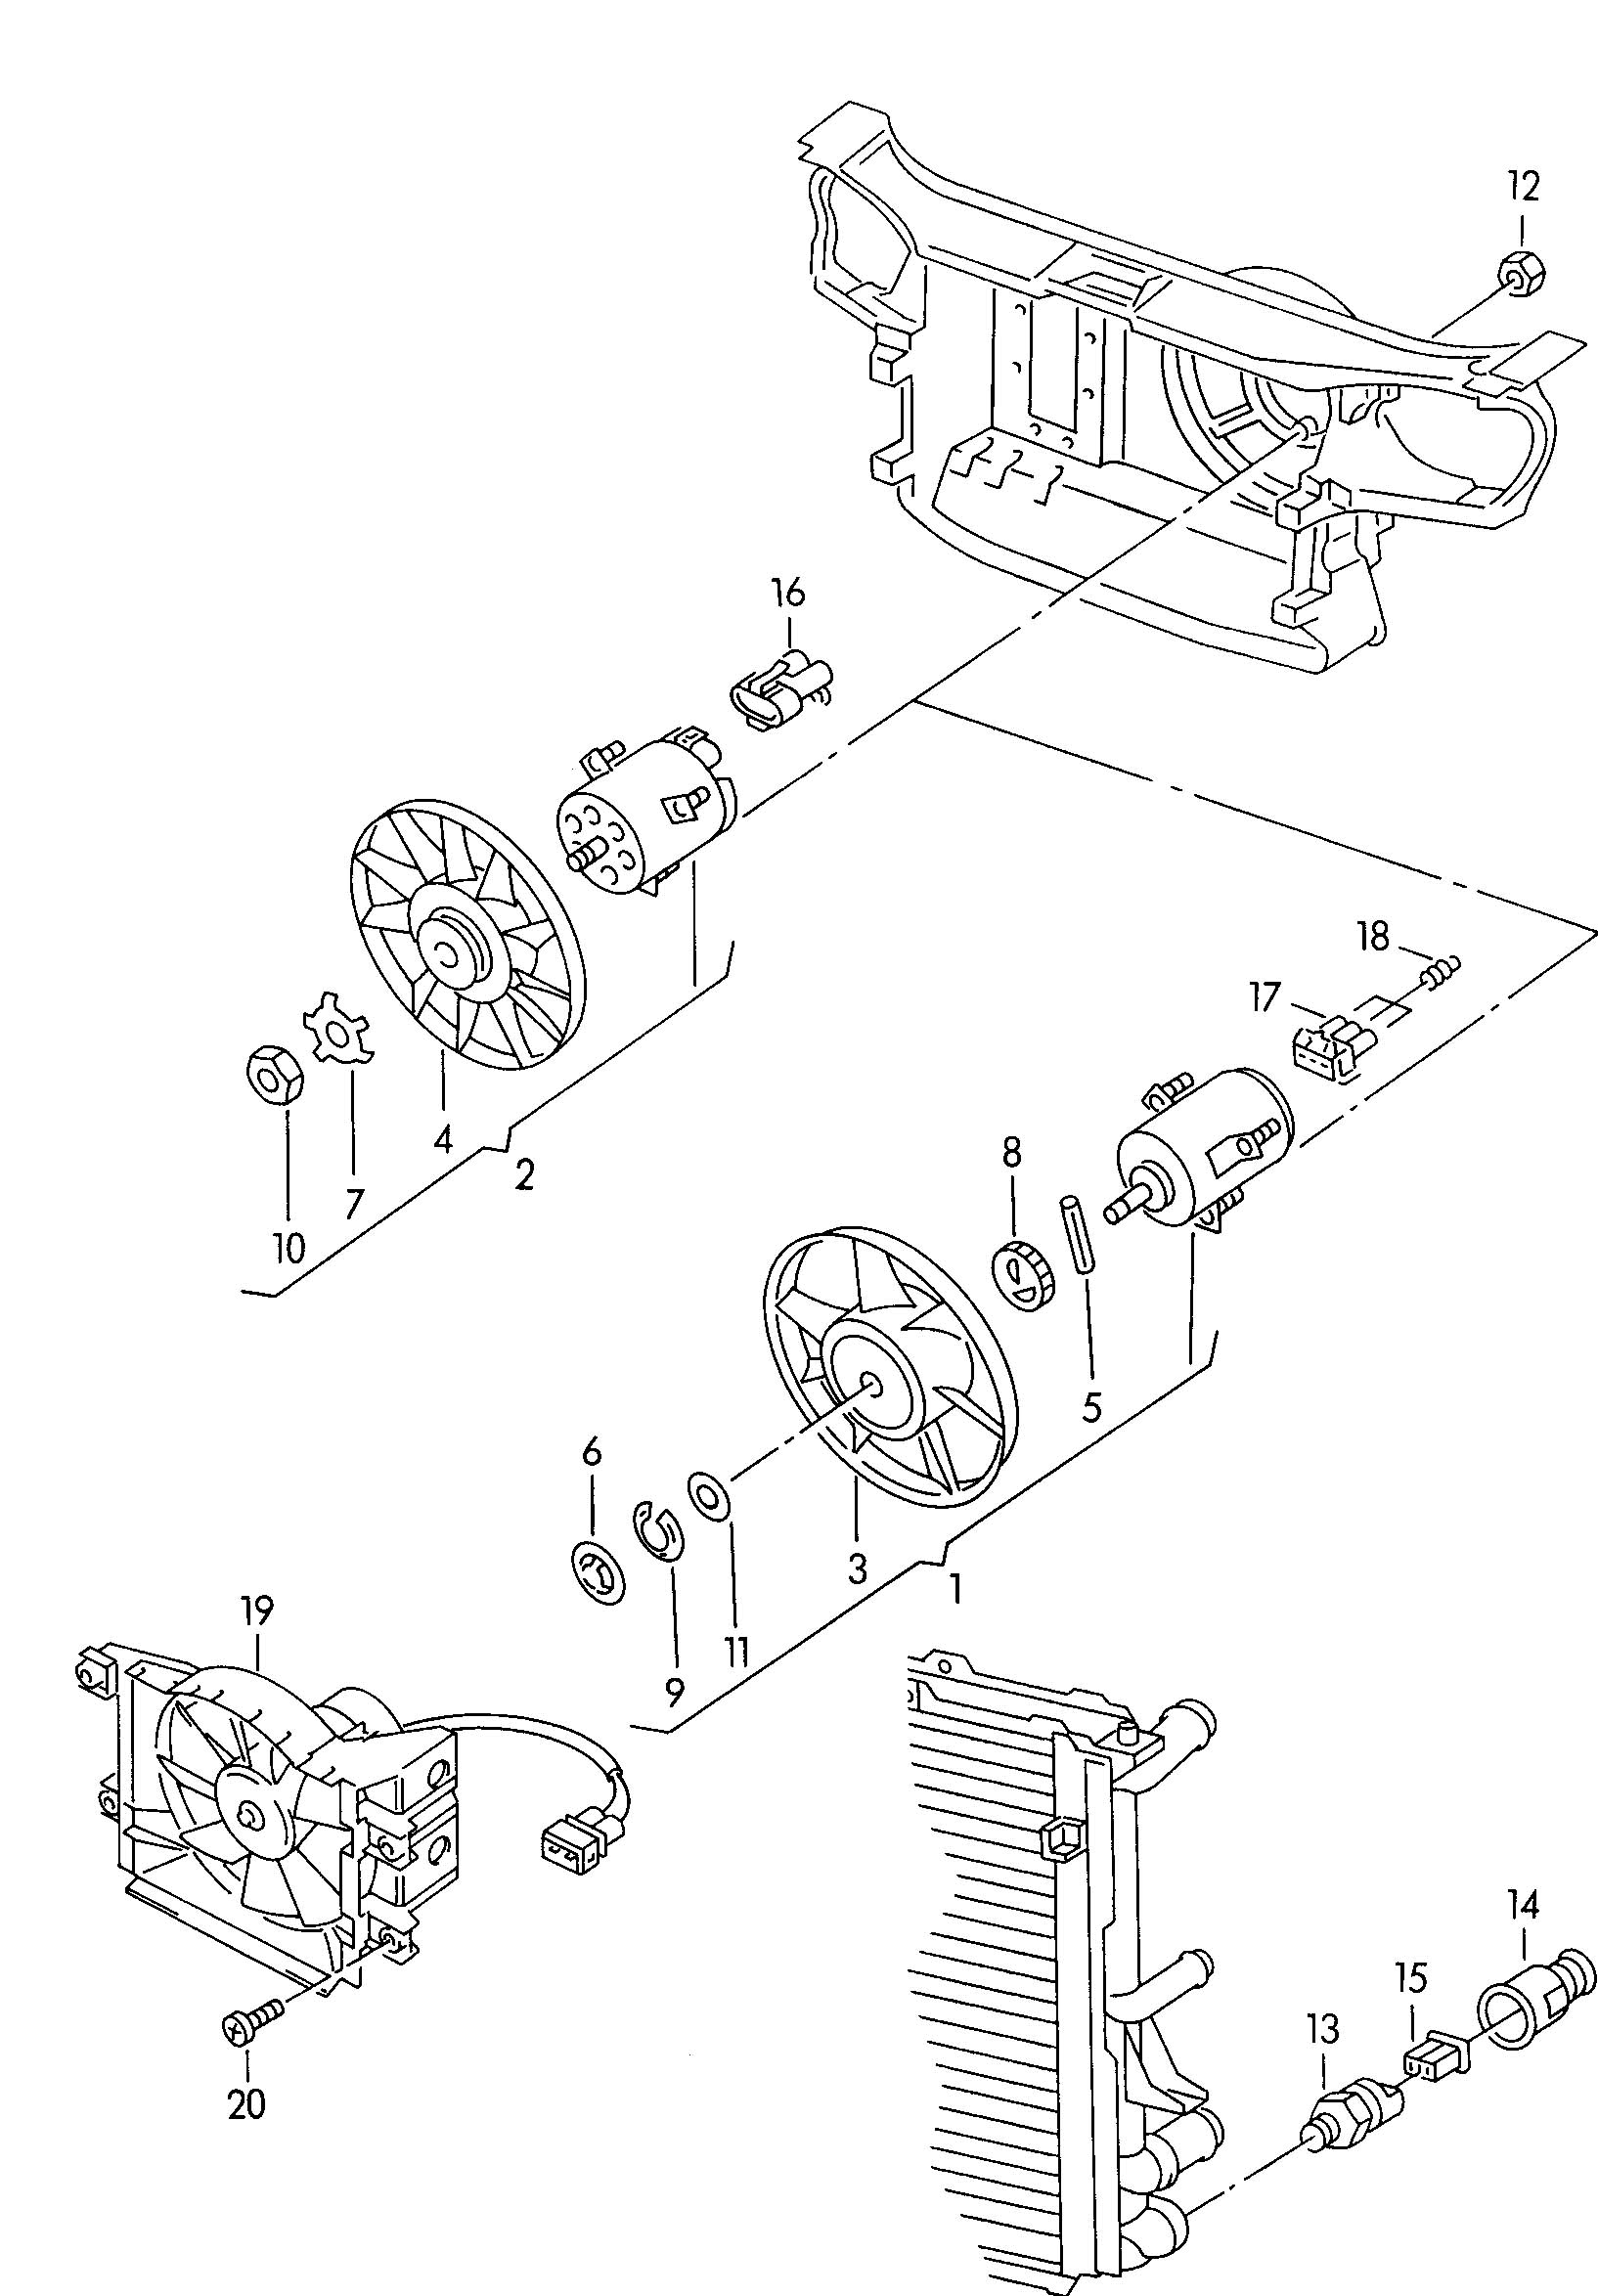 Volkswagen Golf Flat Contact Housing With Electric Fan